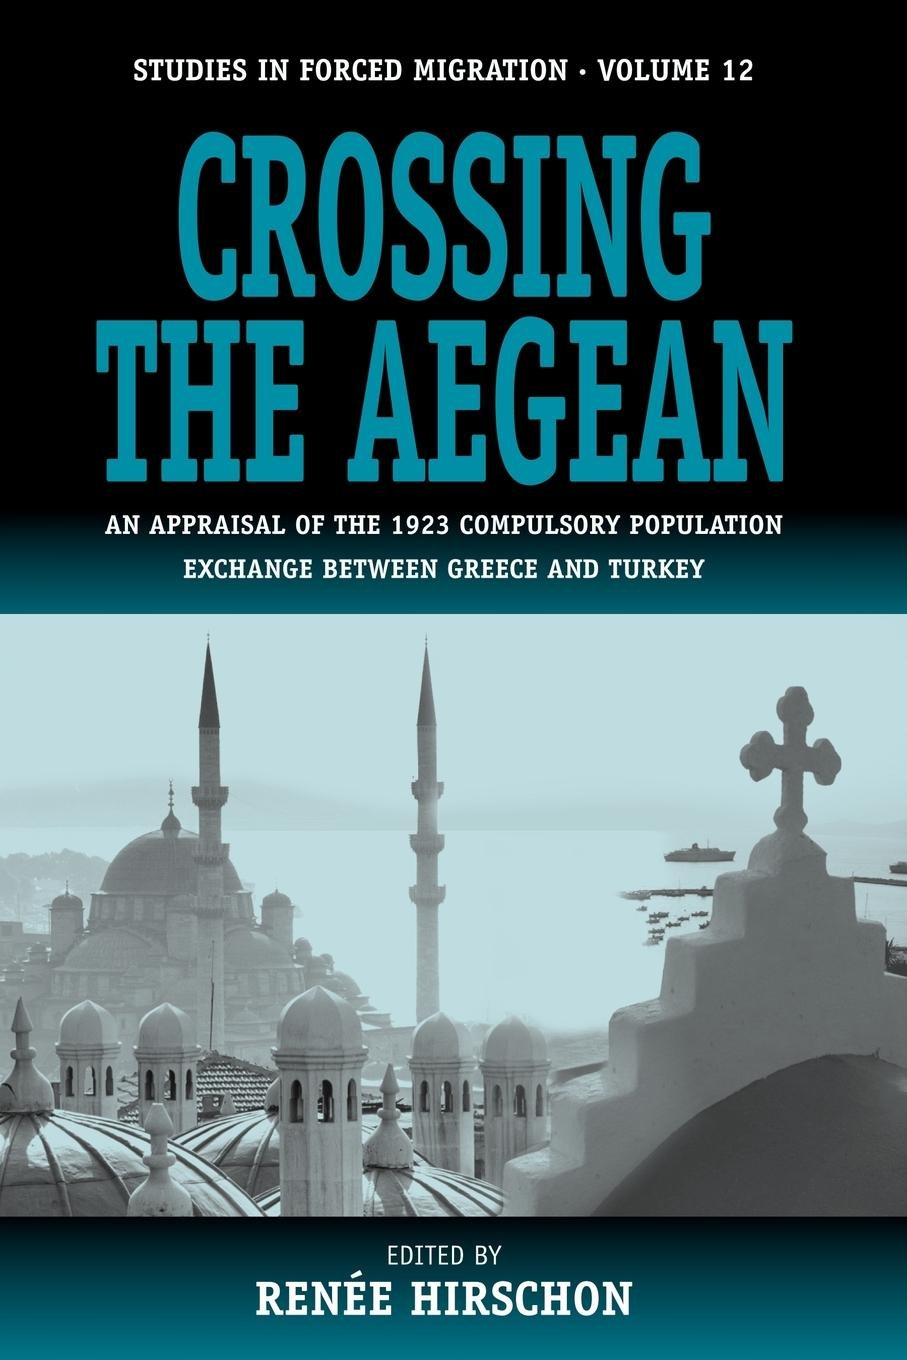 Crossing the Aegean: An Appraisal of the 1923 Compulsory Population Exchange between Greece and Turkey (Forced Migration) Paperback – May 30, 2003 Renée Hirschon Berghahn Books 1571815627 Asia